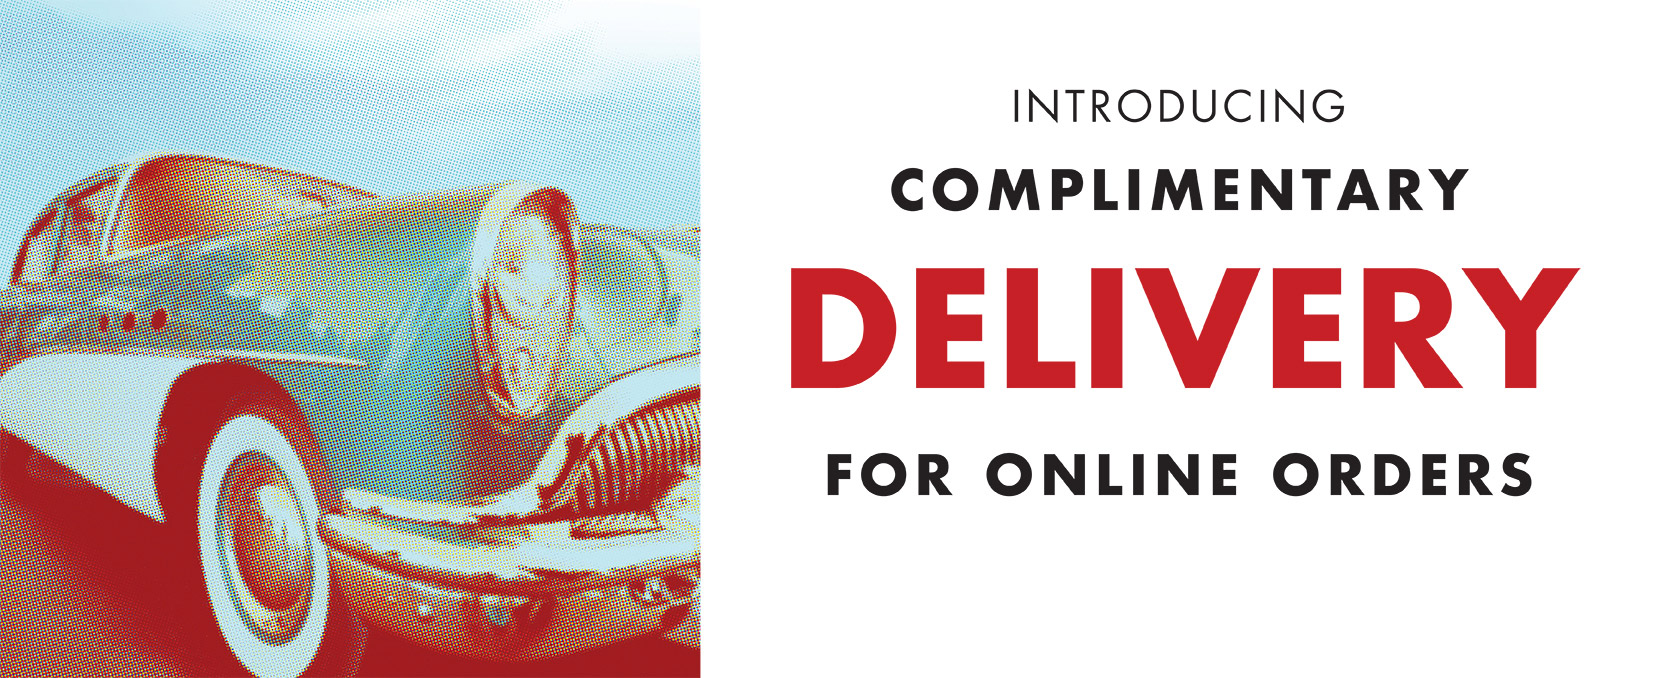 Introducing Complimentary Delivery for Online Orders